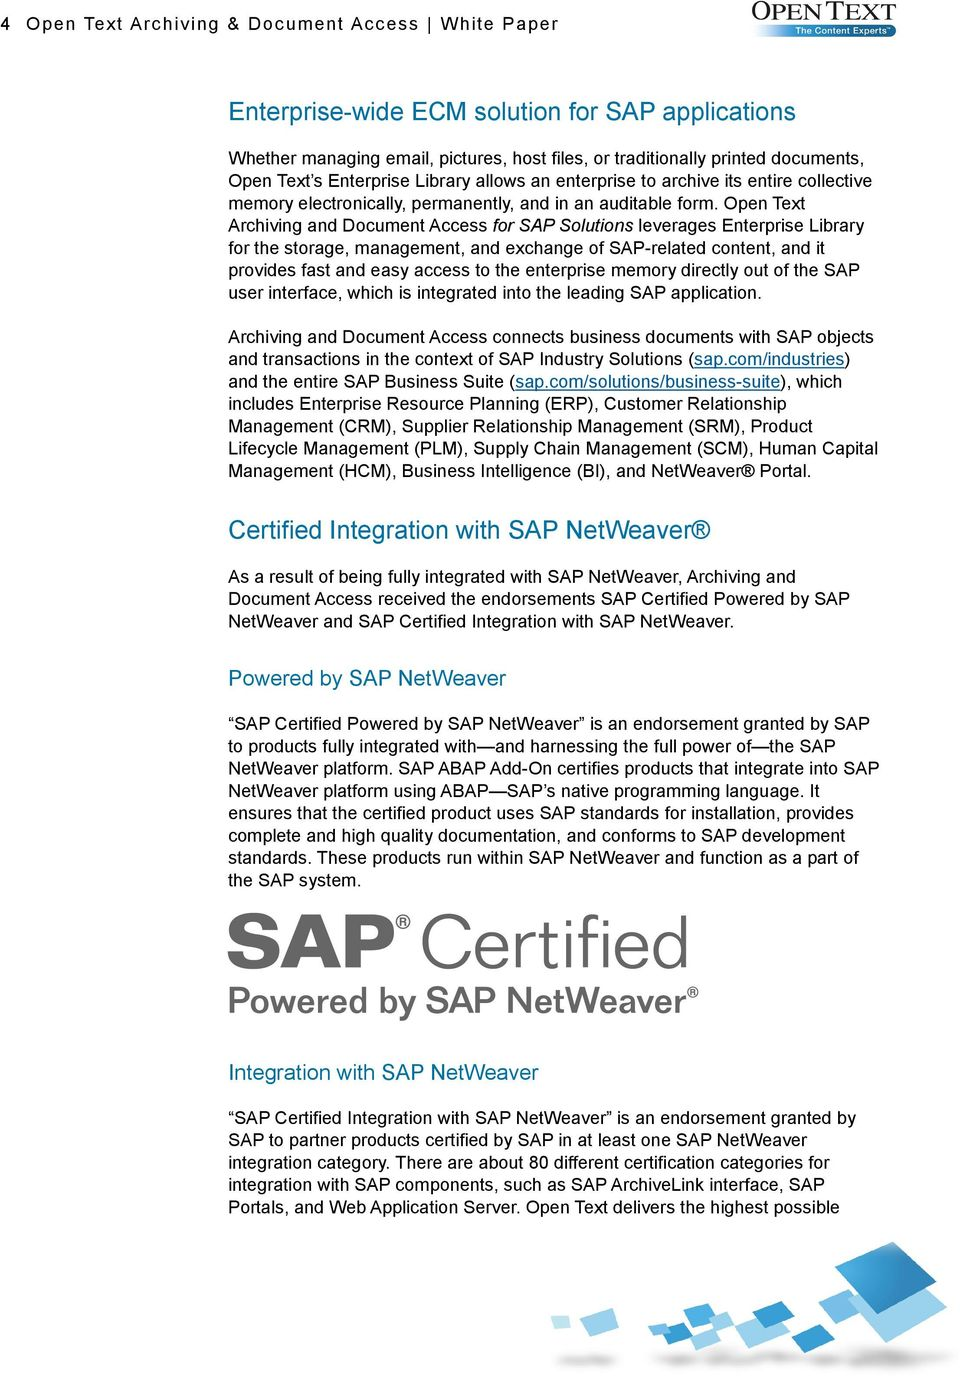 Open Text Archiving and Document Access for SAP Solutions leverages Enterprise Library for the storage, management, and exchange of SAP-related content, and it provides fast and easy access to the